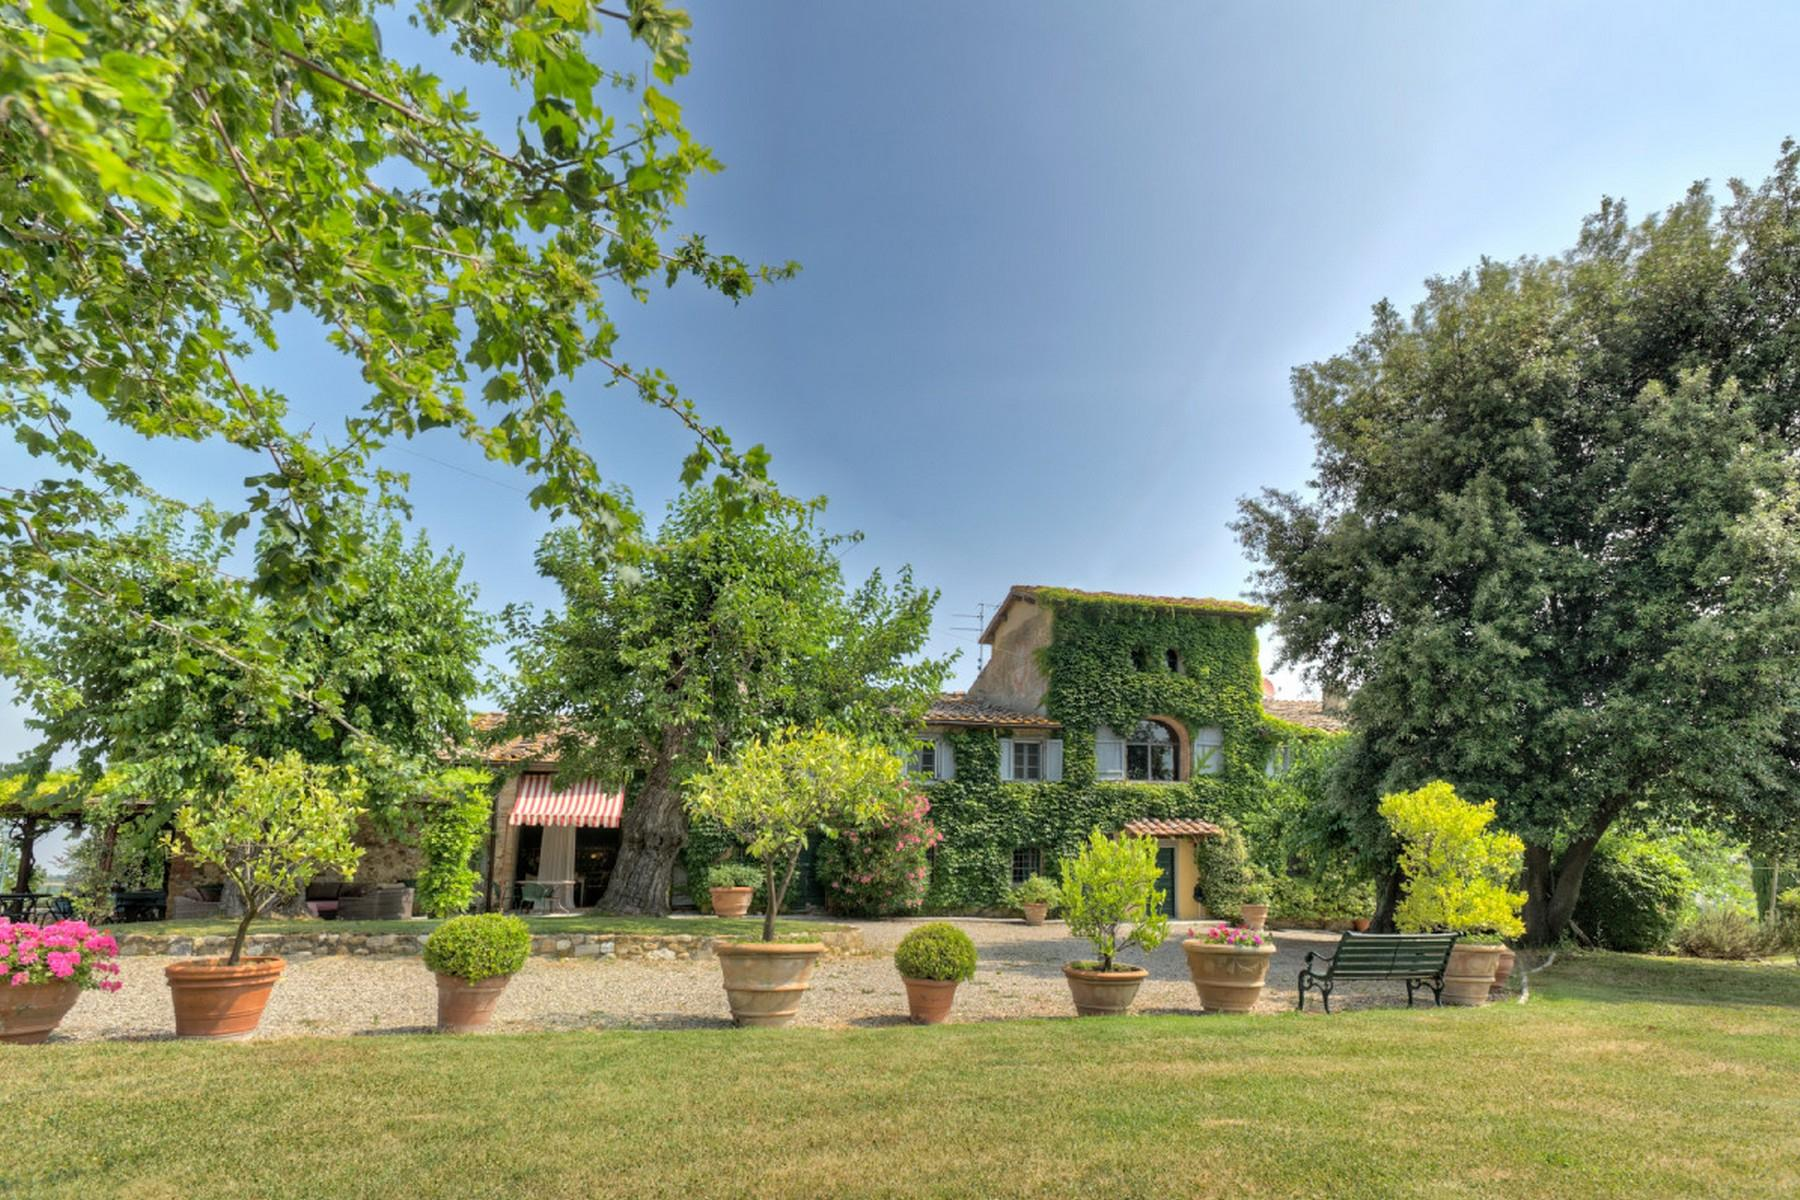 State-of-the-art rustic villa set in Florentine Chianti - 3